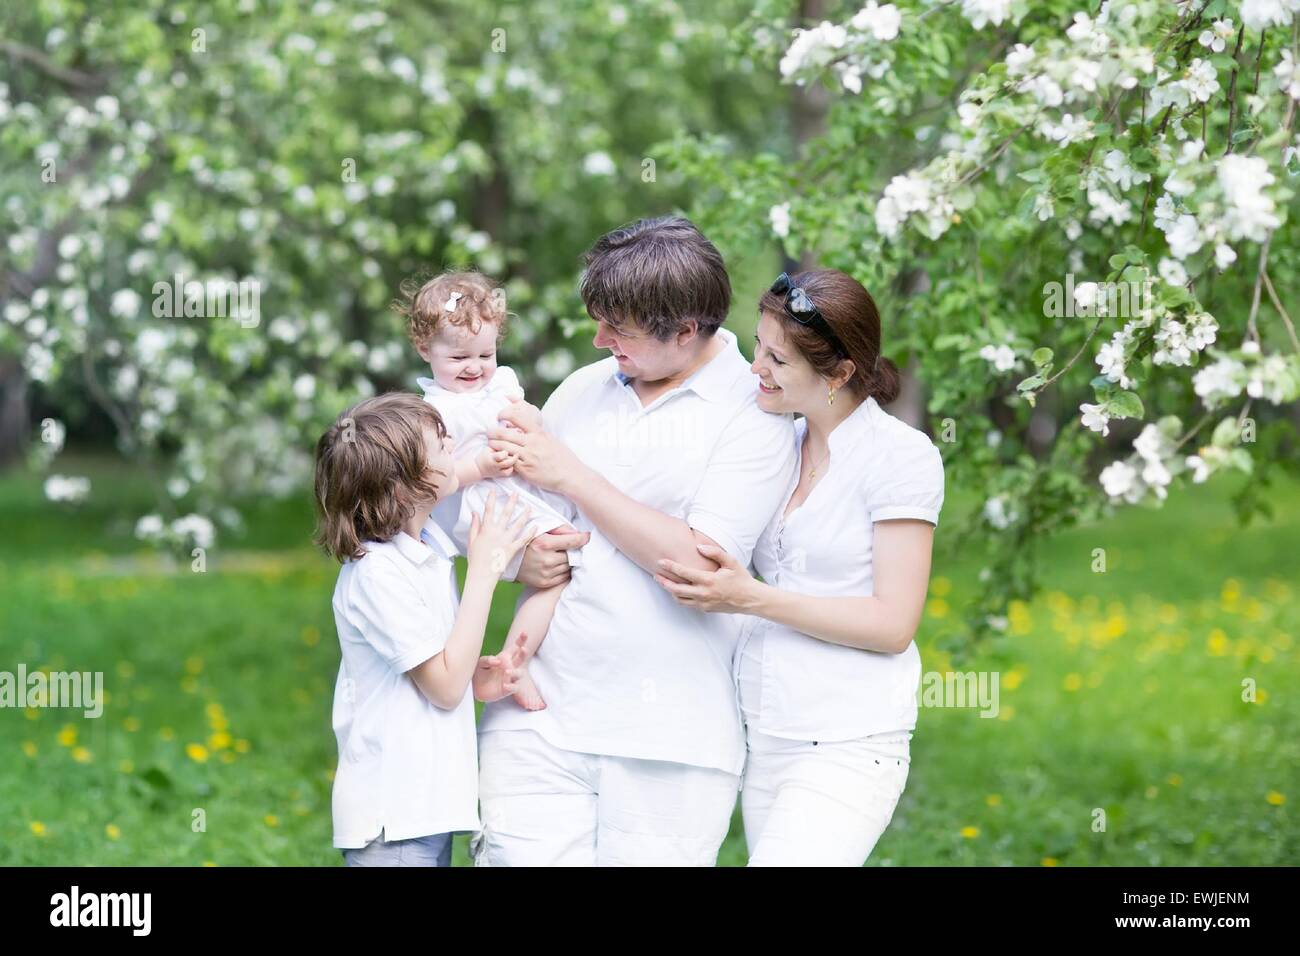 Happy young family in a blooming apple tree garden - Stock Image